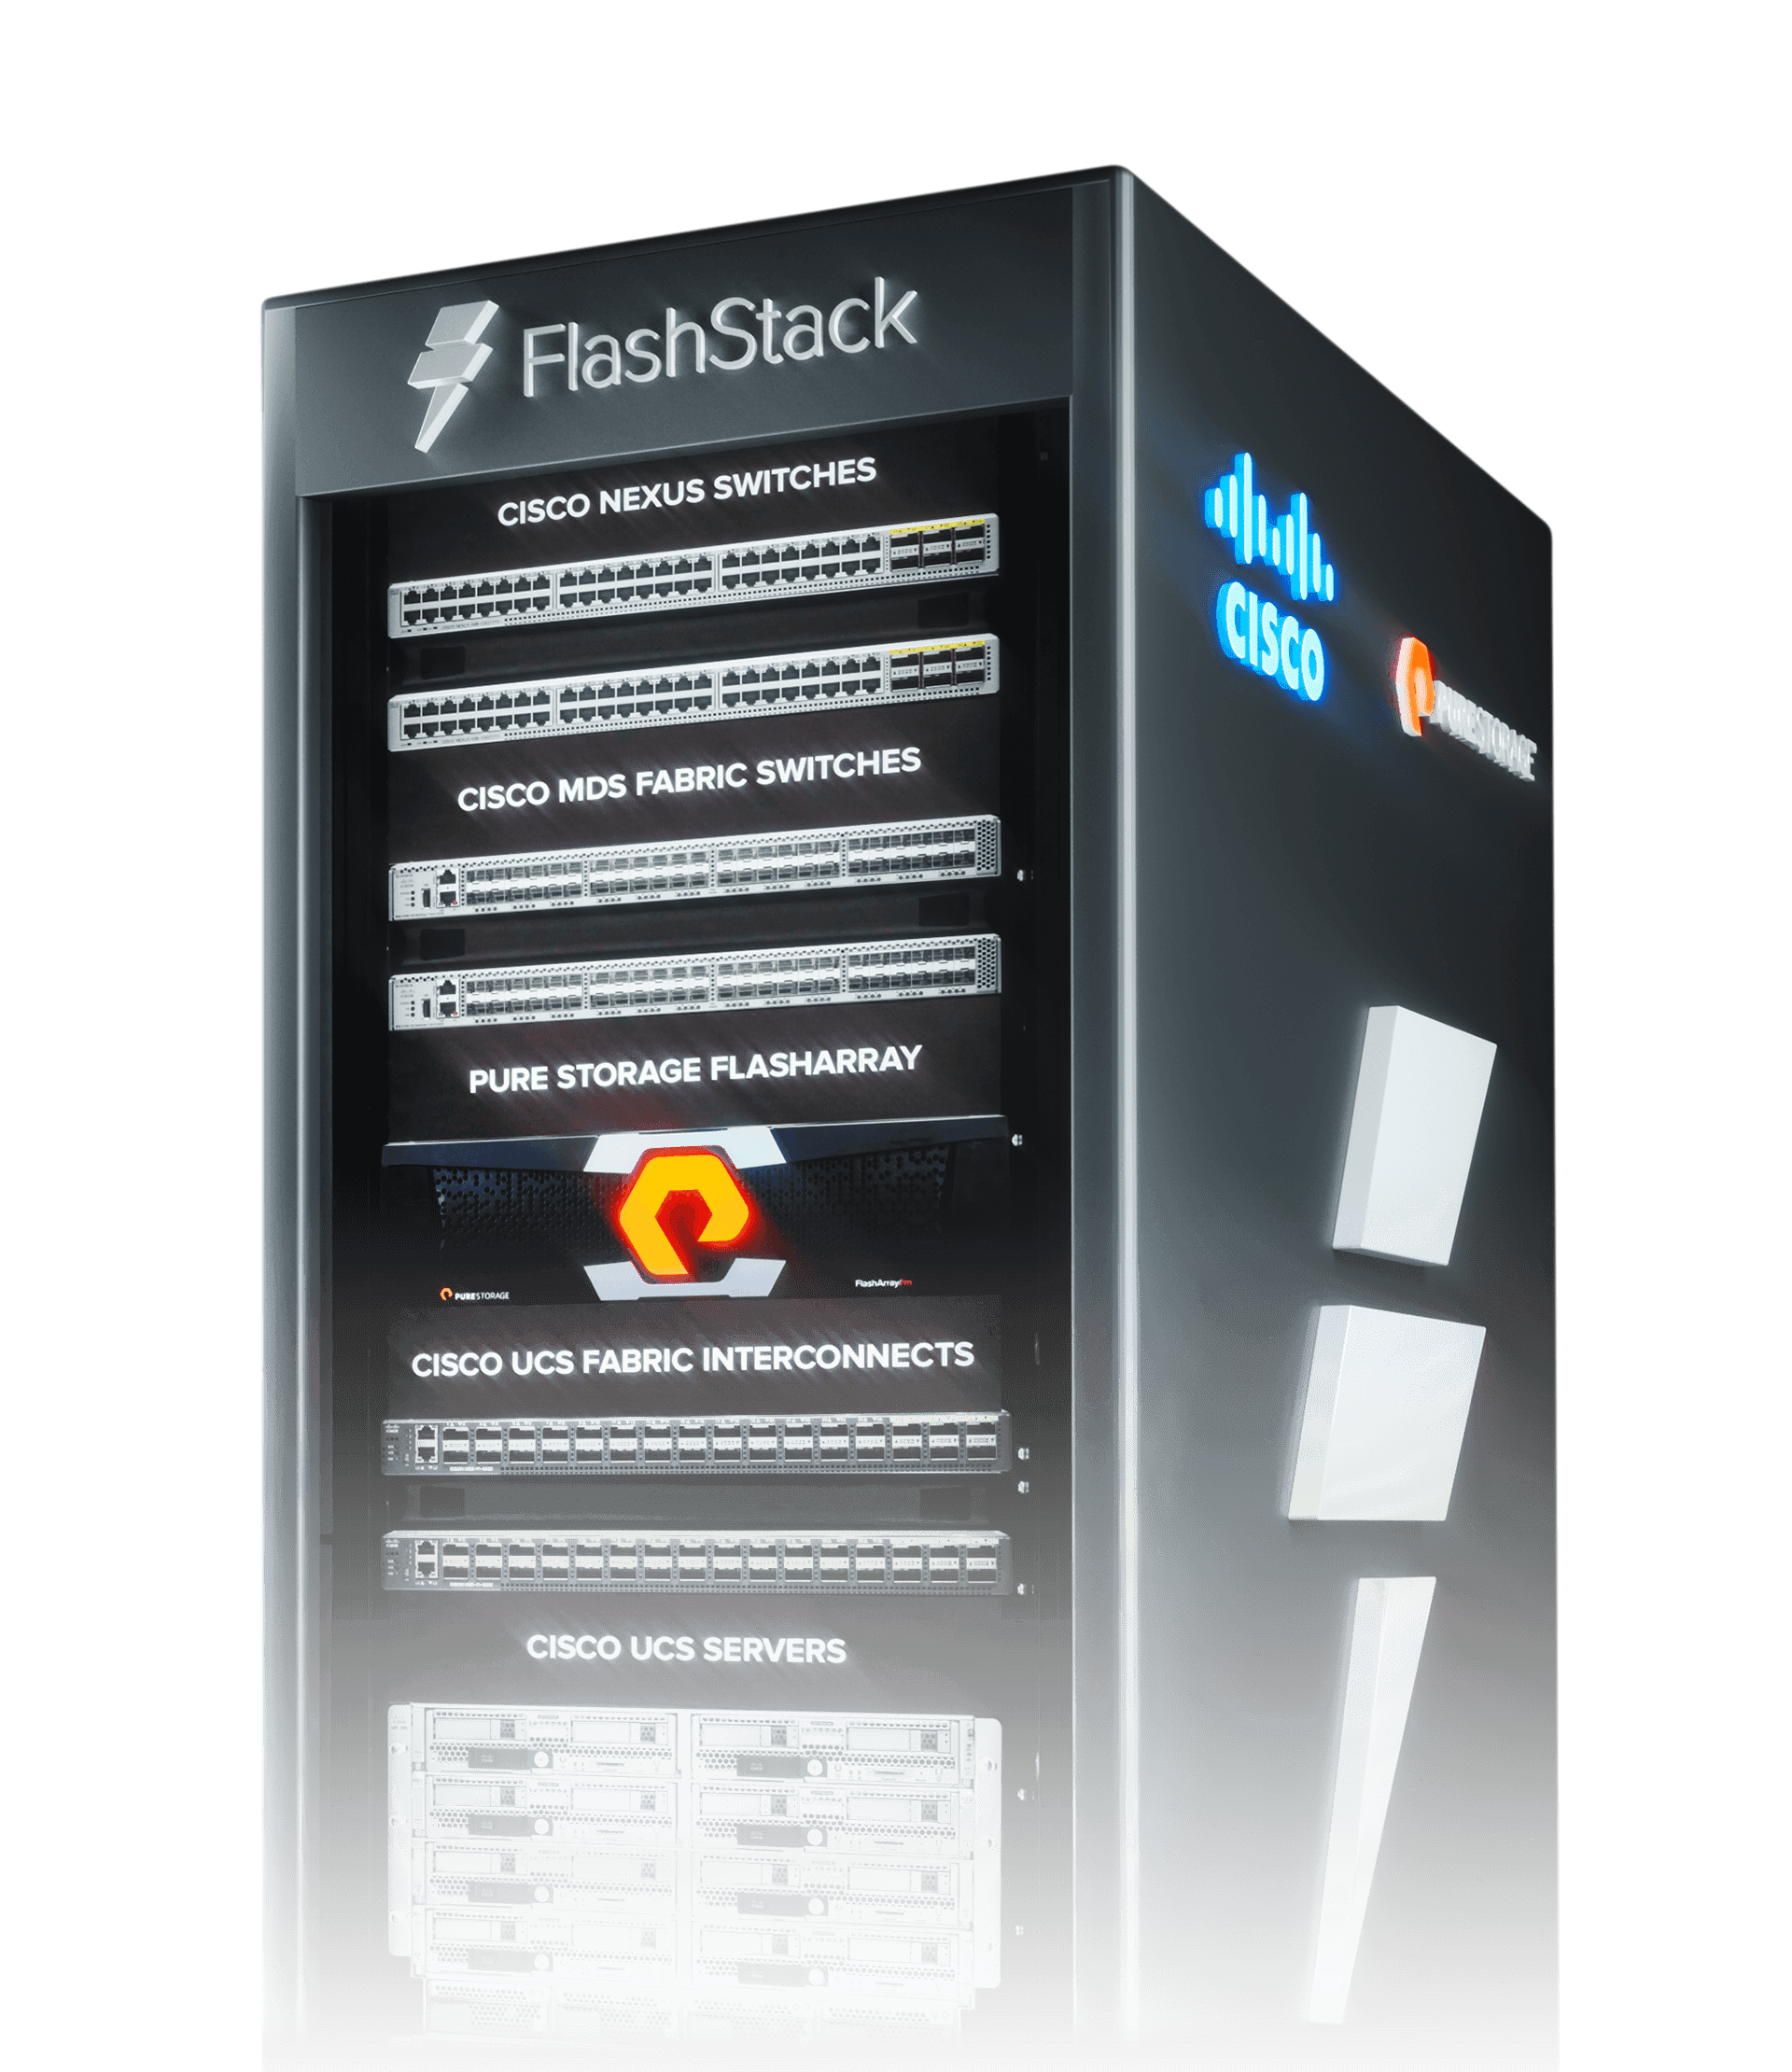 FlashSatck Secure Converged Infrastructure Solution